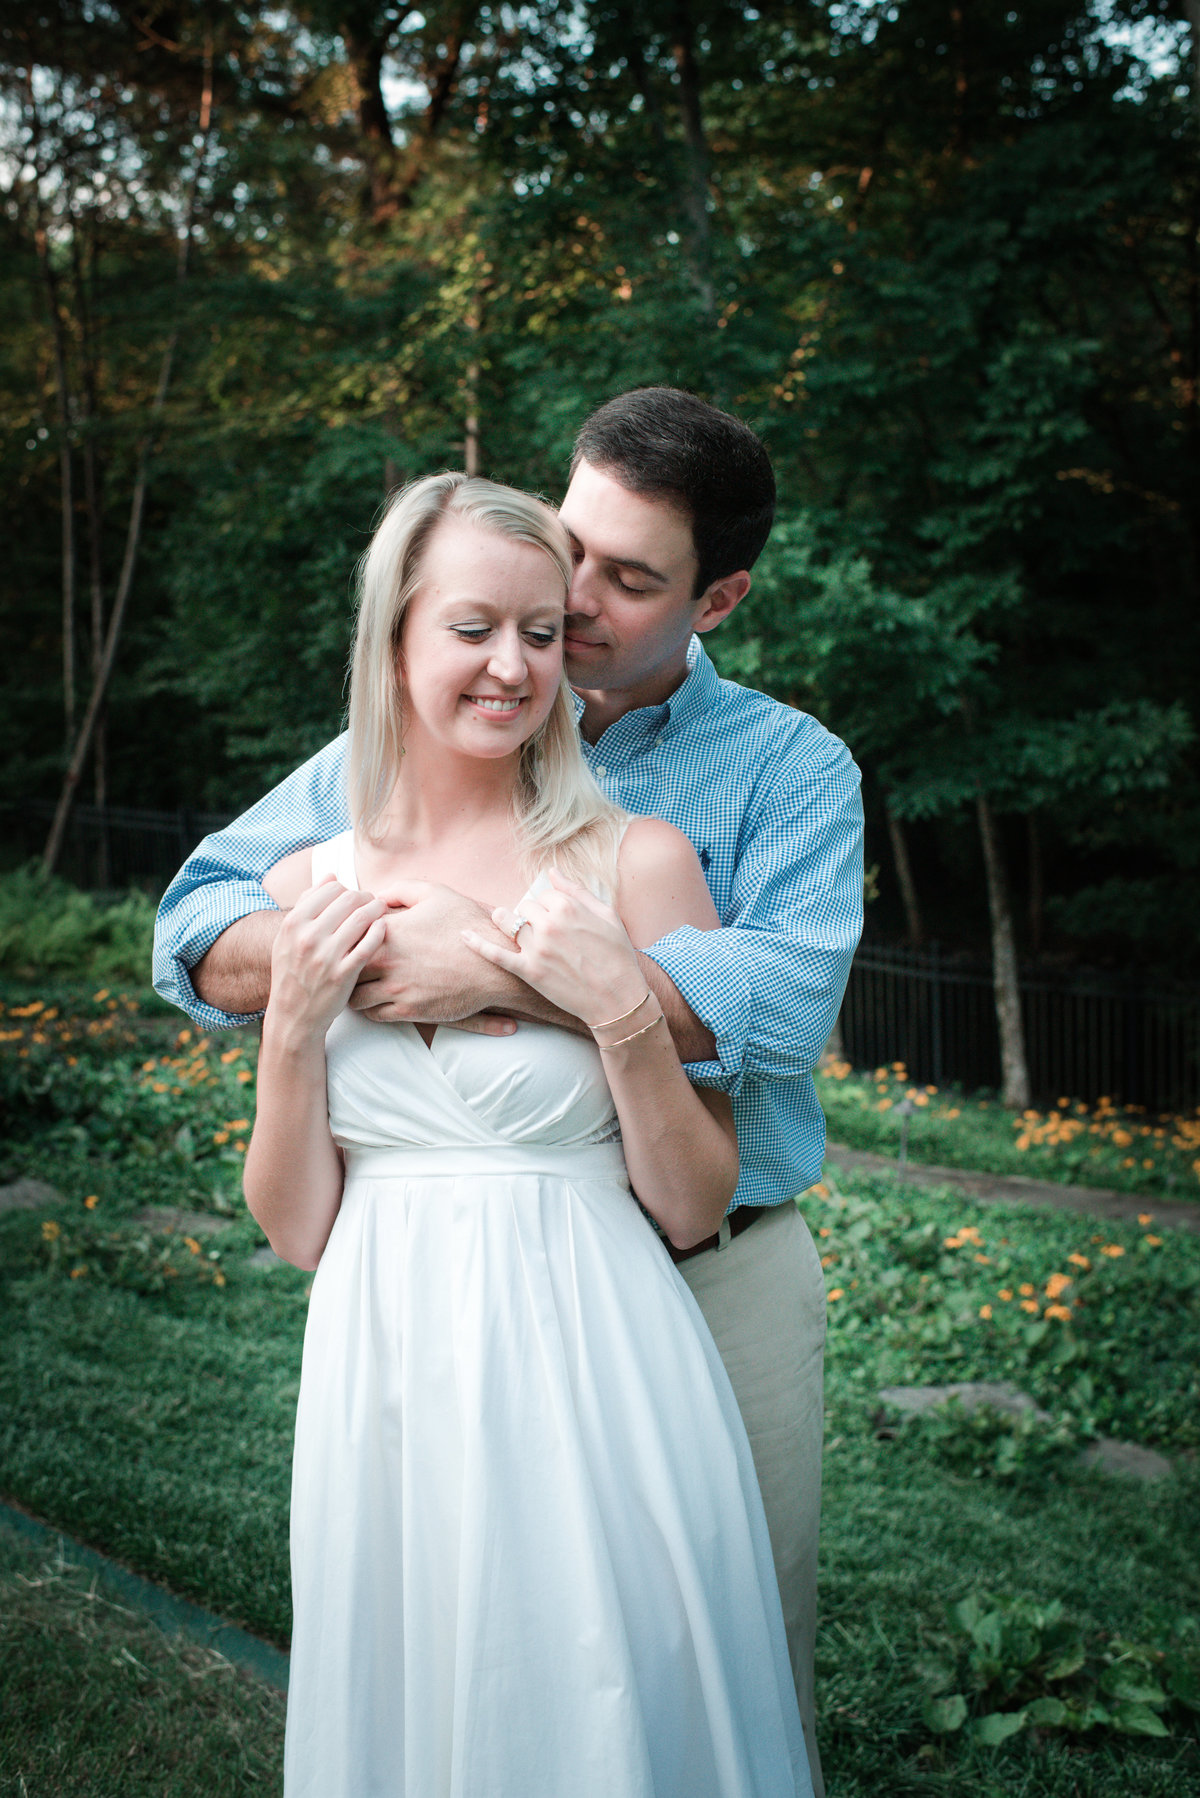 Tennessee Wedding Photographer - Mint Magnolia Photography554